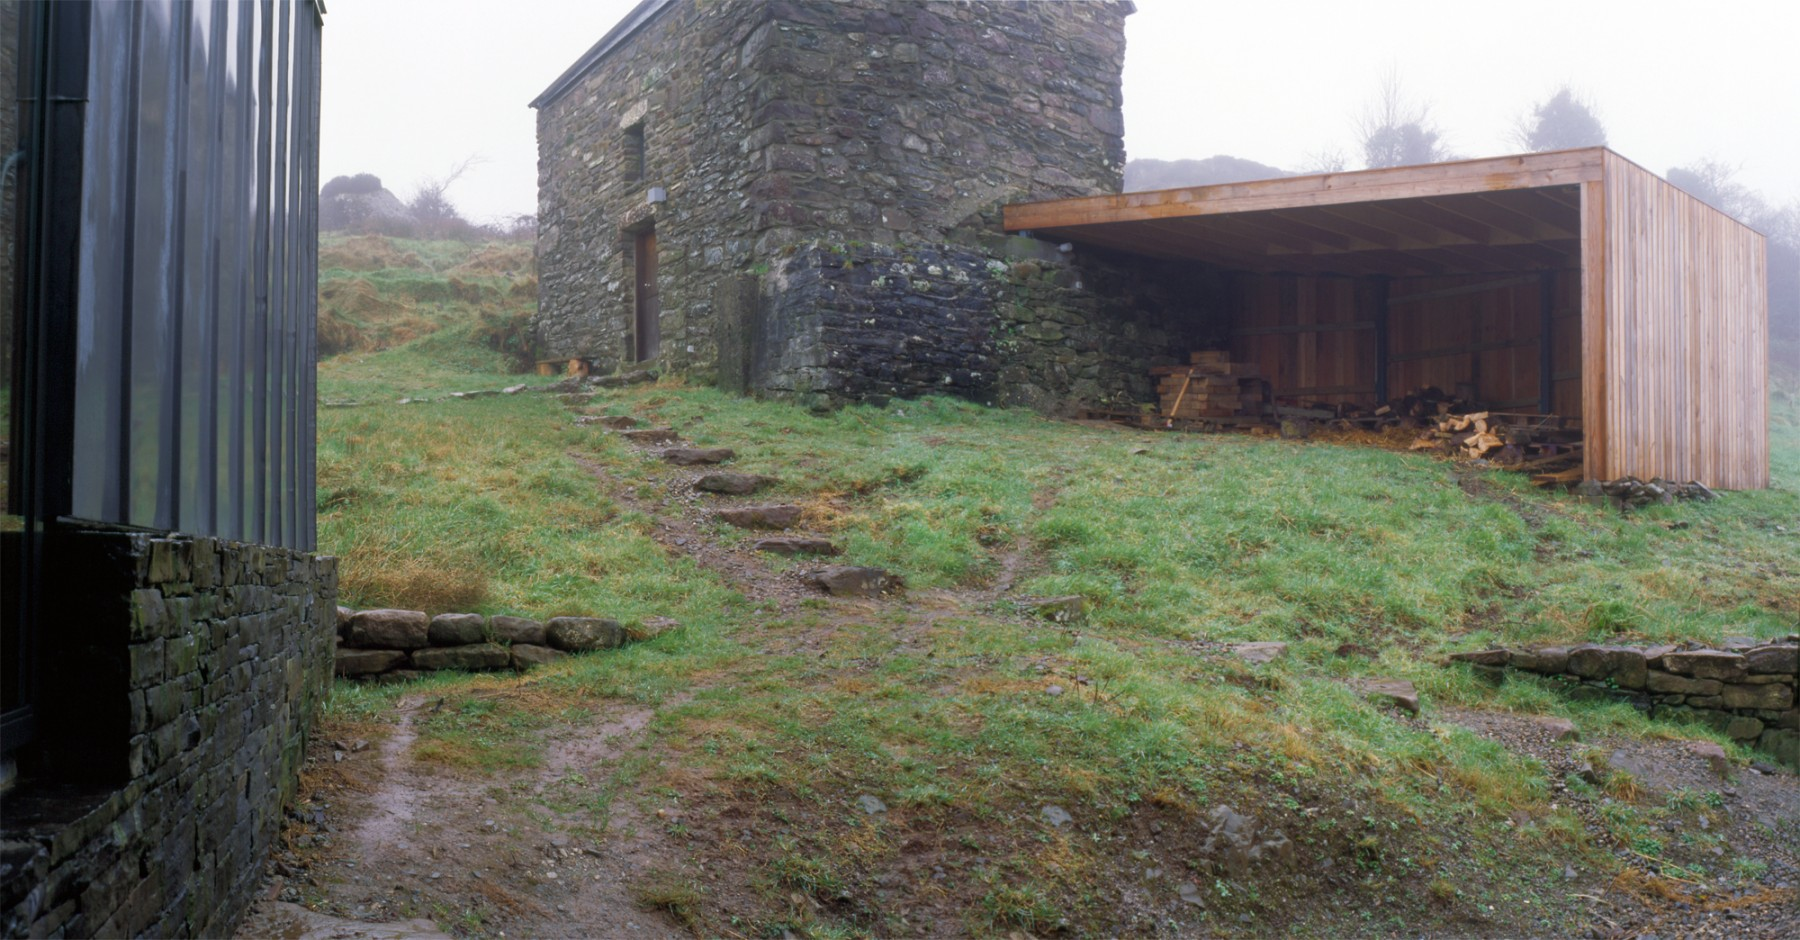 FaHa-Farm-house-barn-County-Clare-Ireland-residential-home-rural-timber-zinc-Jamie-Fobert-Architects-9